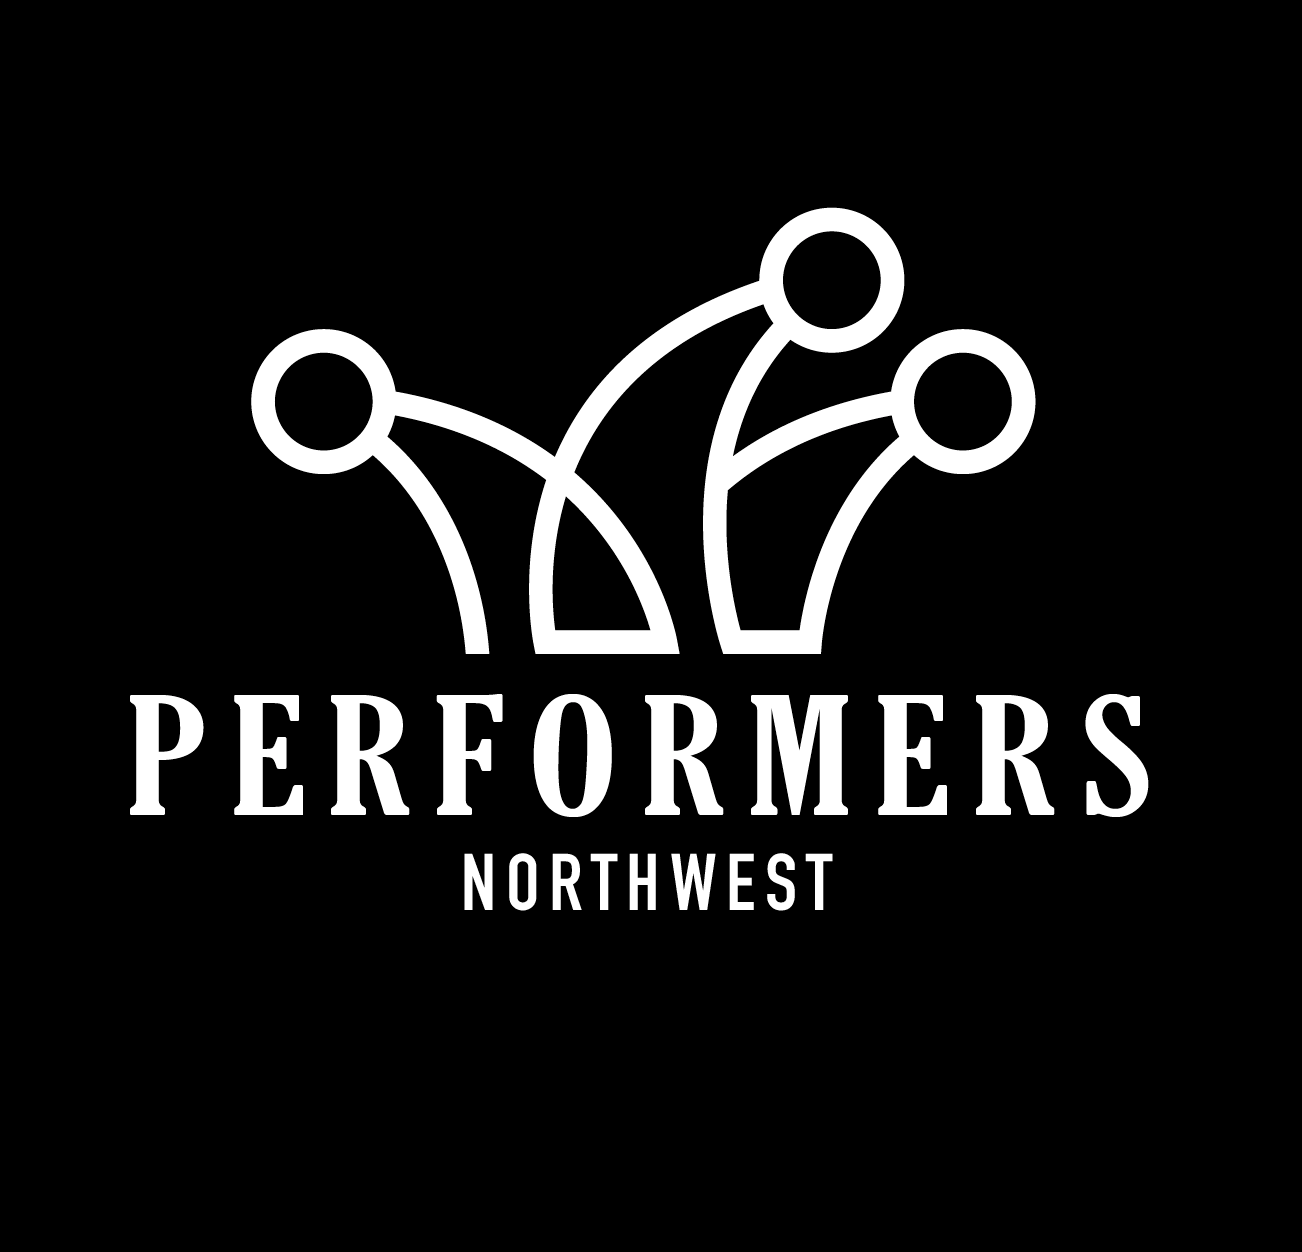 Performers Northwest - Seattle, WA 98122 - (425)681-4727 | ShowMeLocal.com